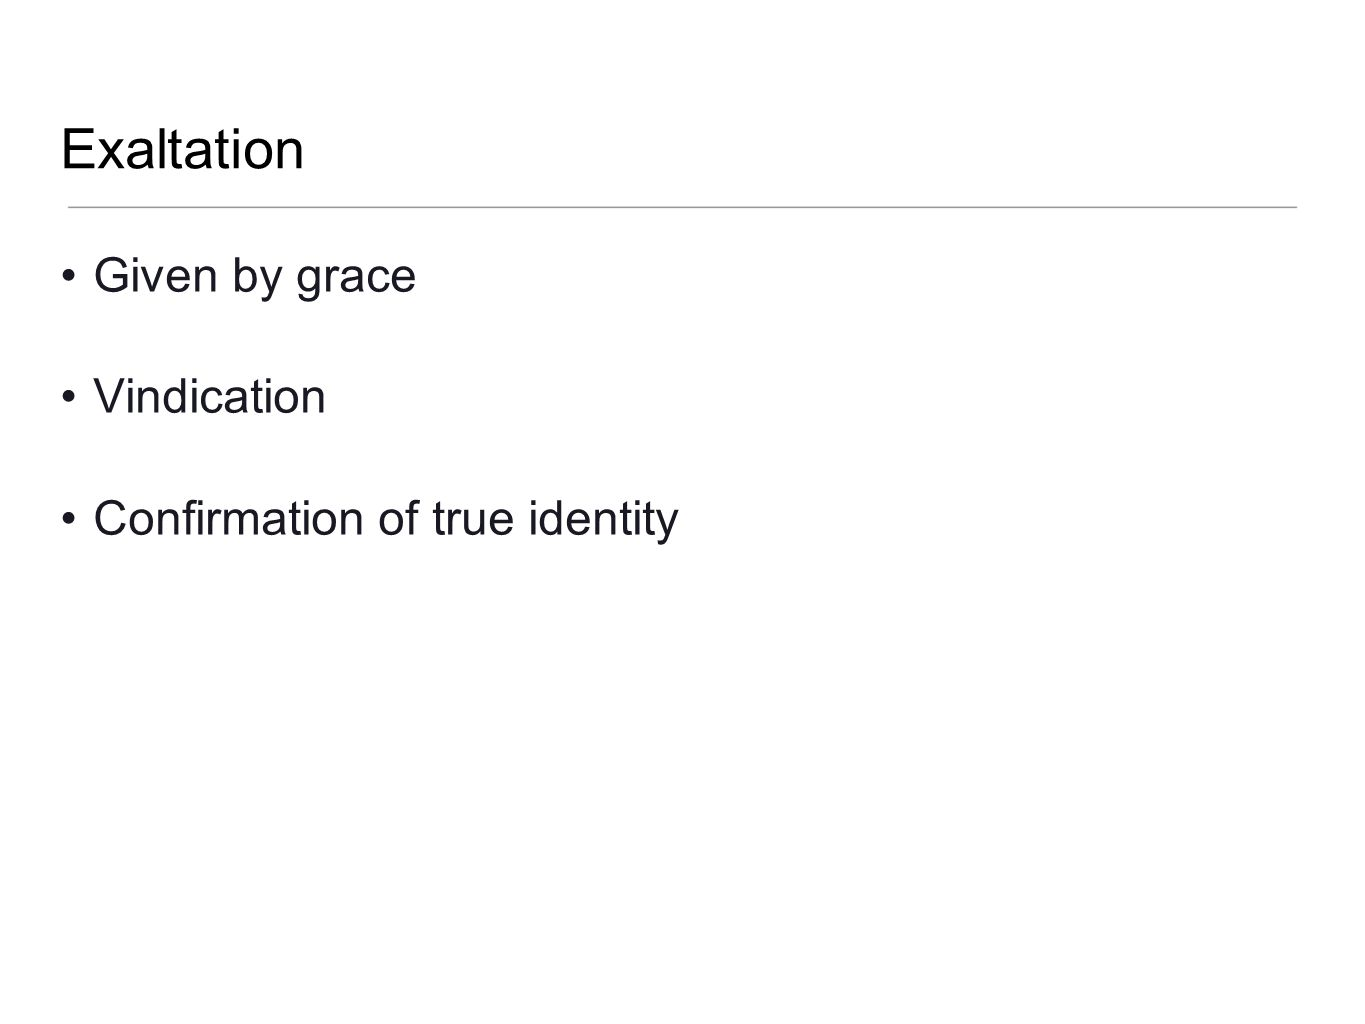 Exaltation Given by grace Vindication Confirmation of true identity